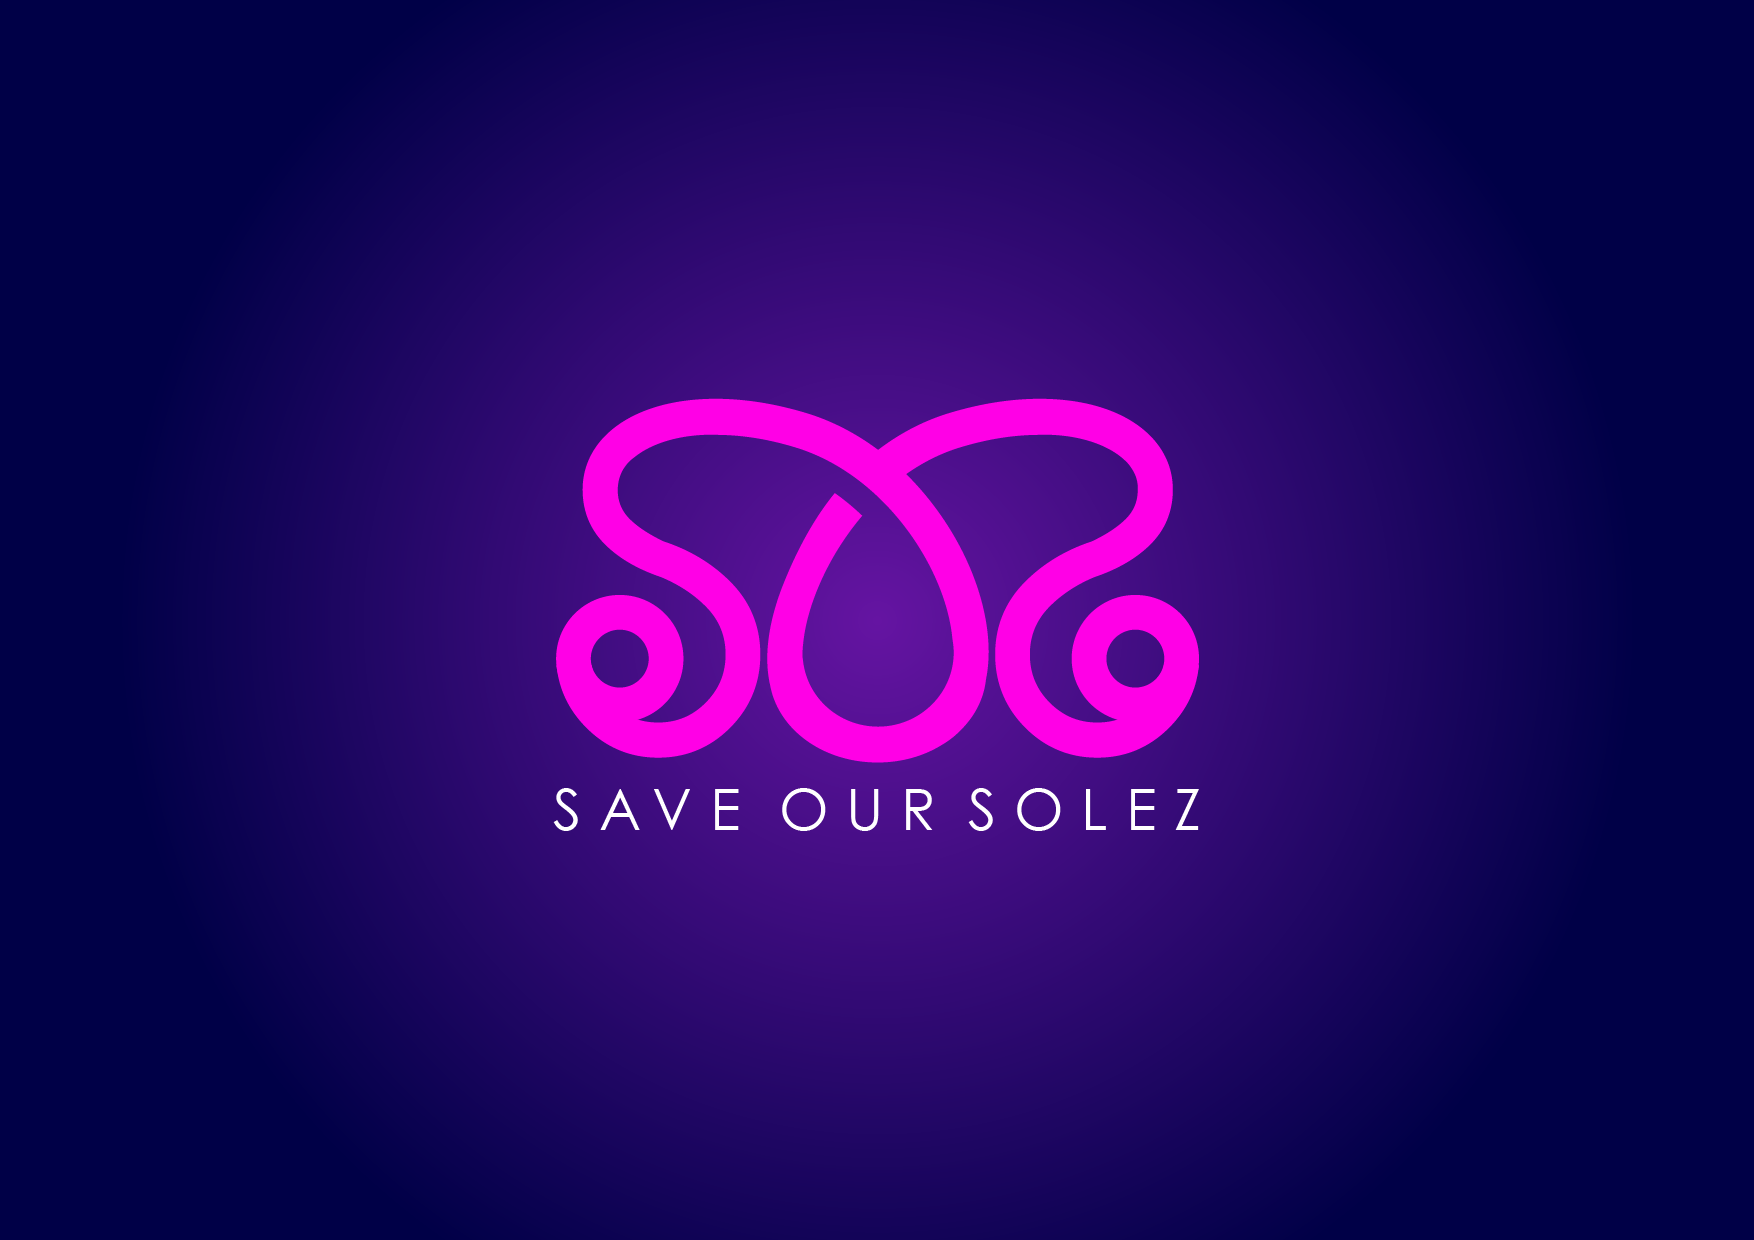 Logo Design by bulb - Entry No. 36 in the Logo Design Contest Captivating Logo Design for Save Our Solez.